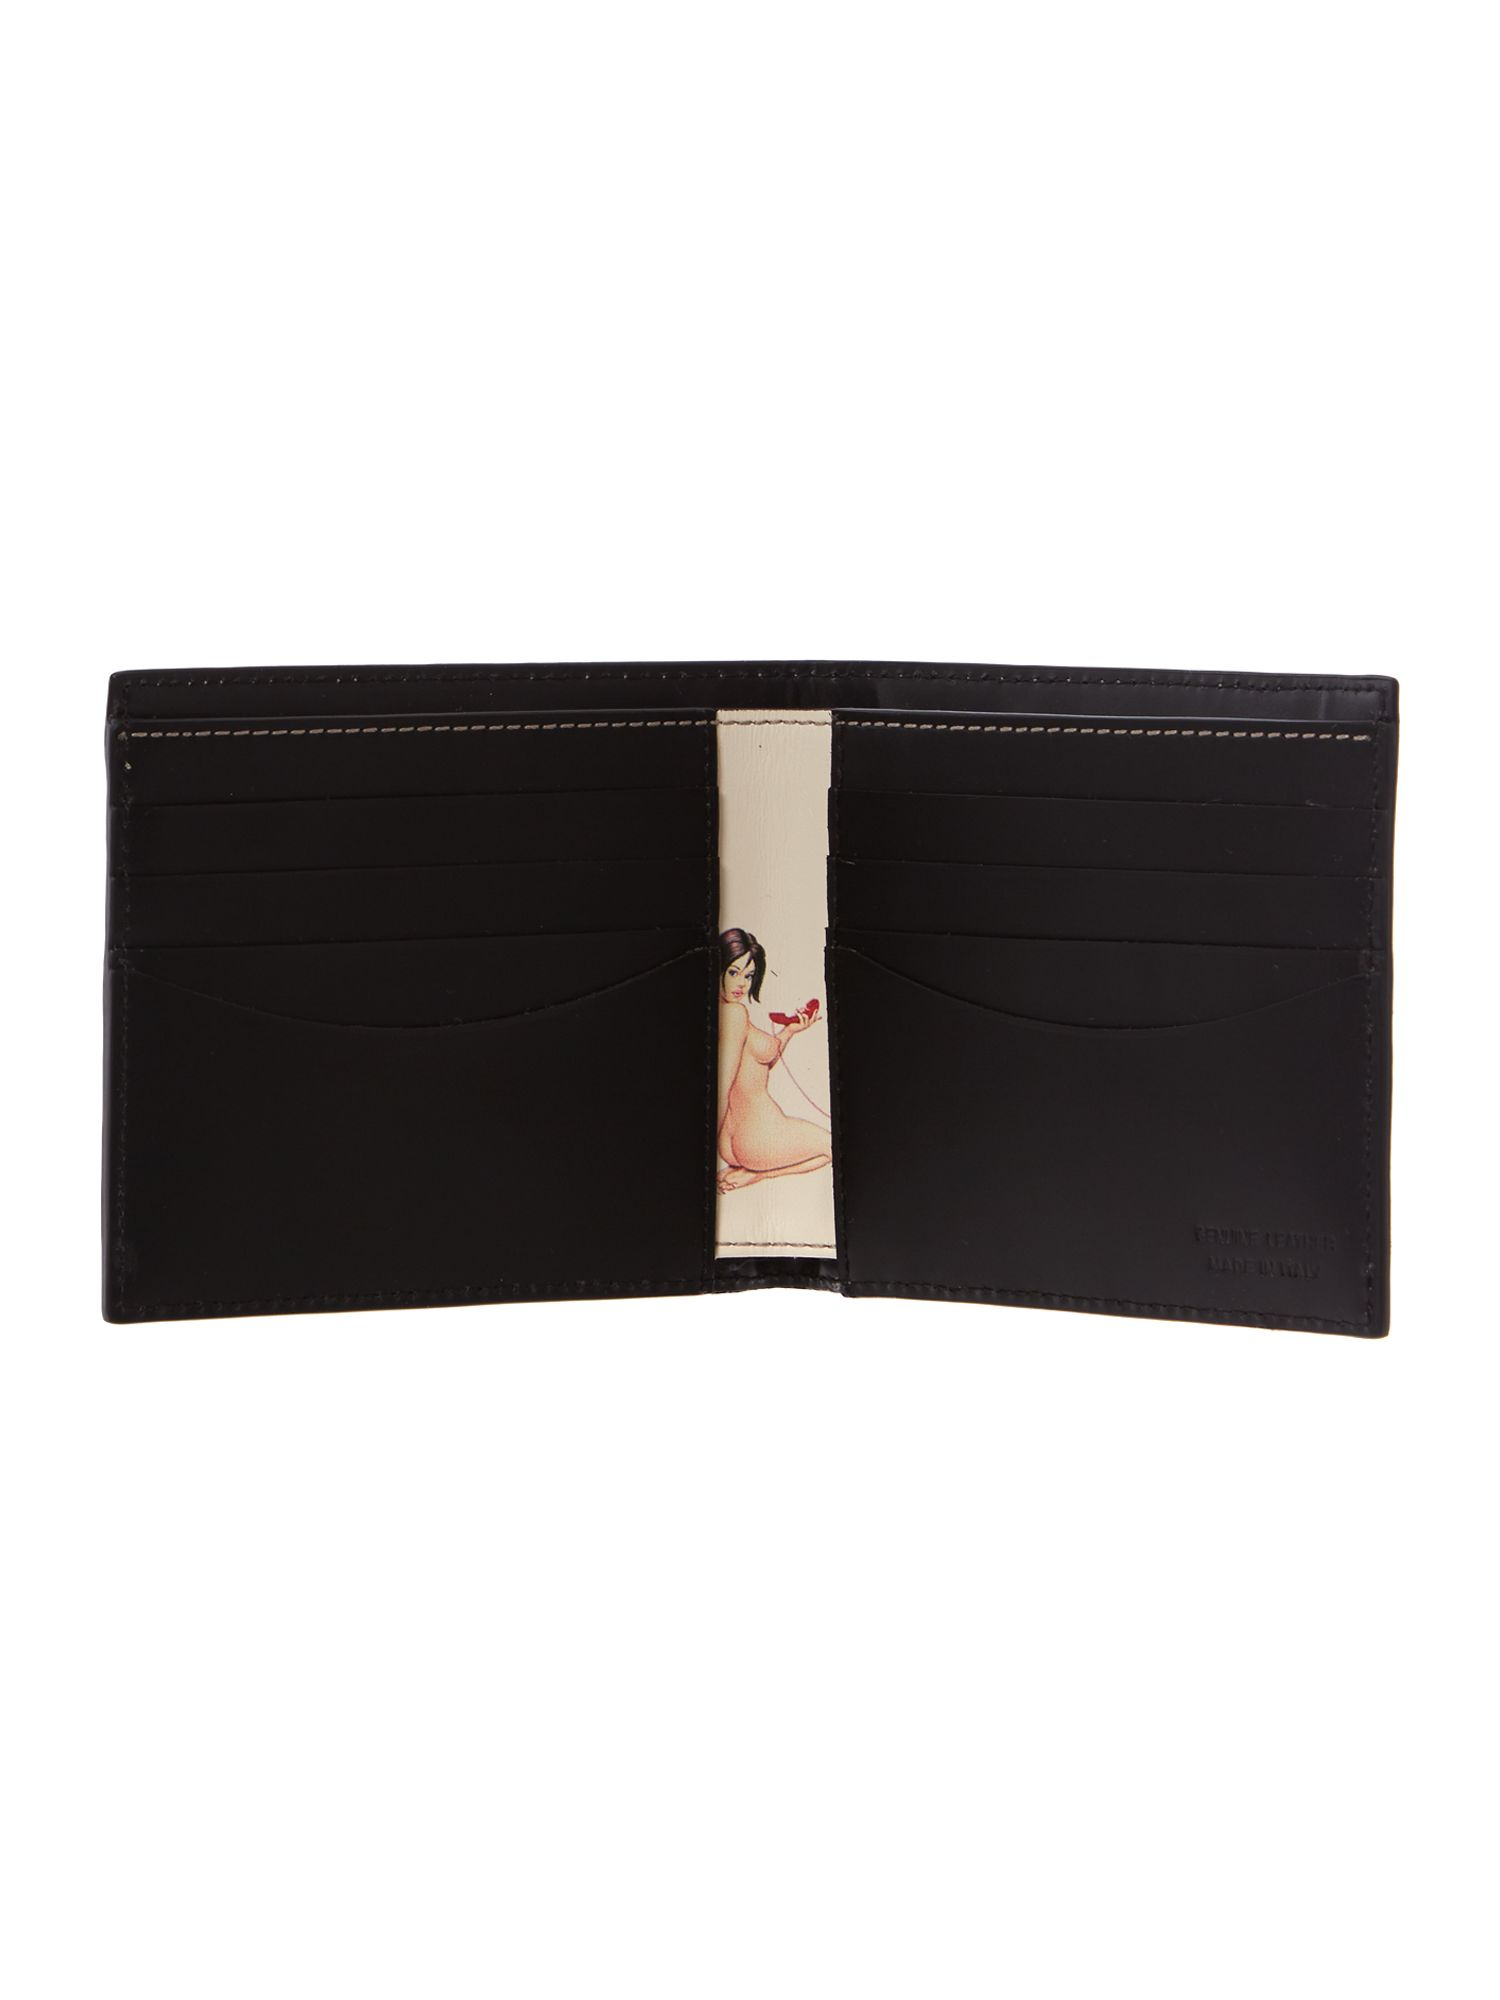 Naked lady billfold wallet